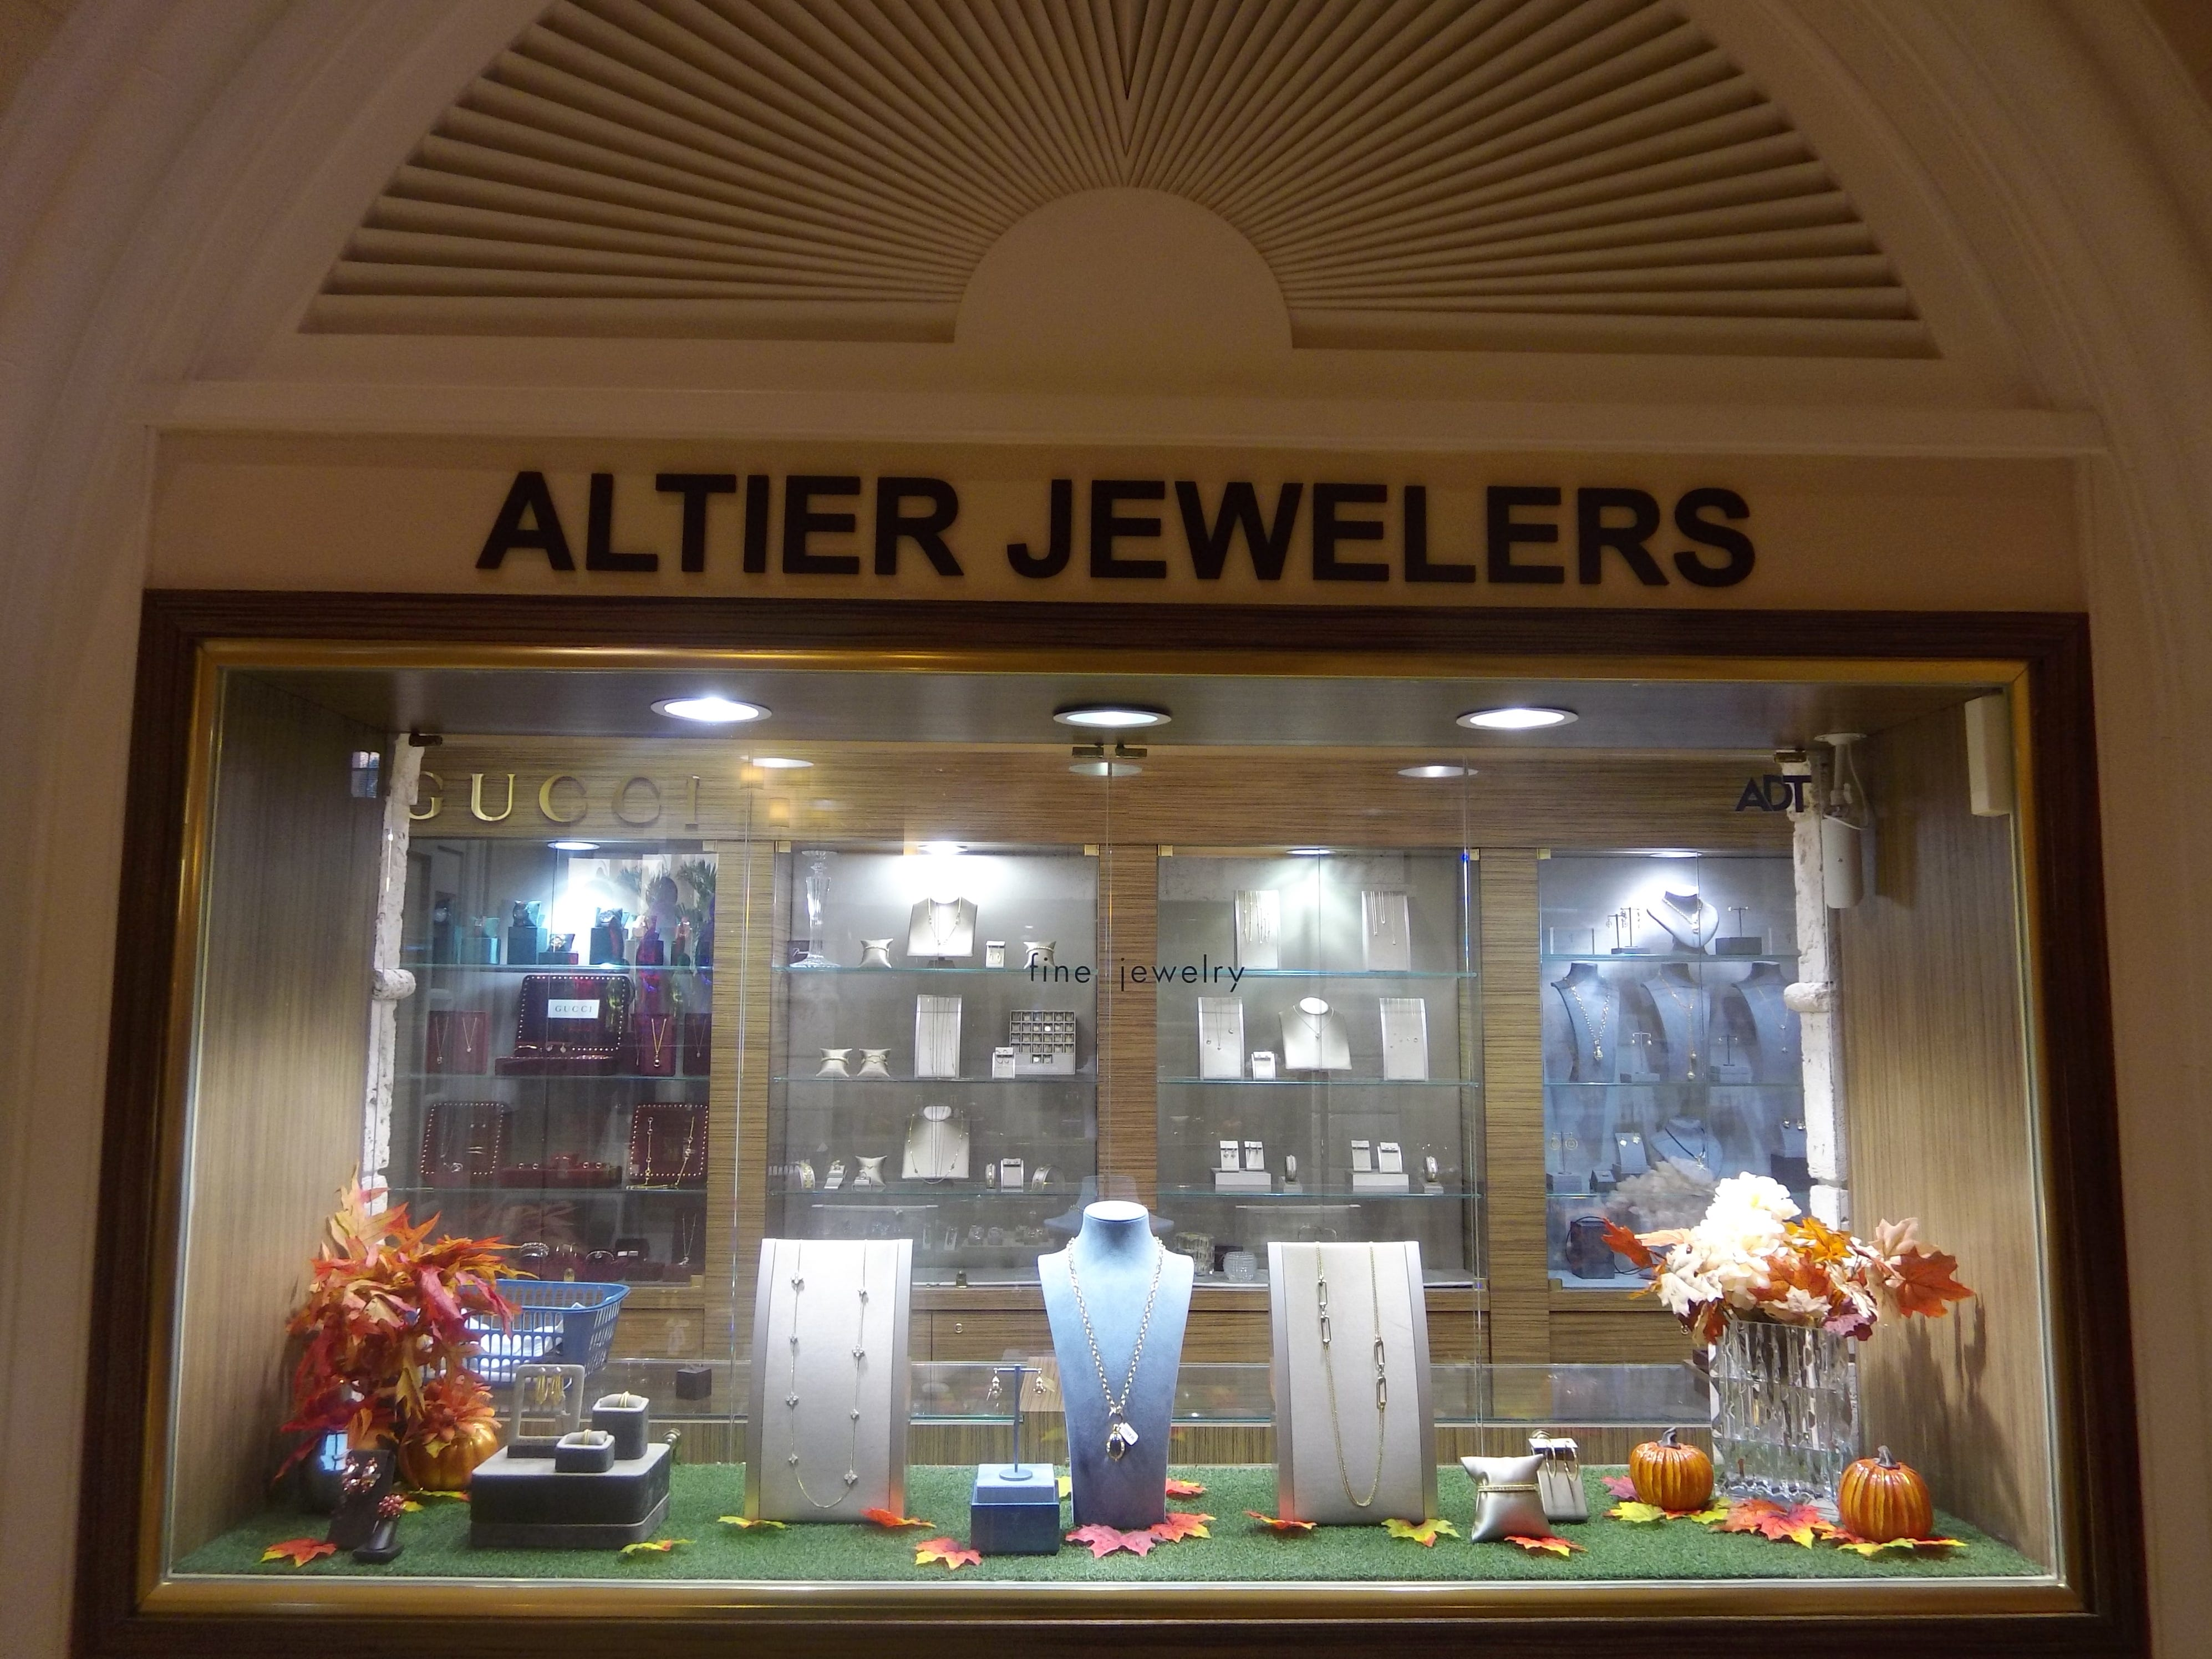 Pick out something special at Altier Jewelers.